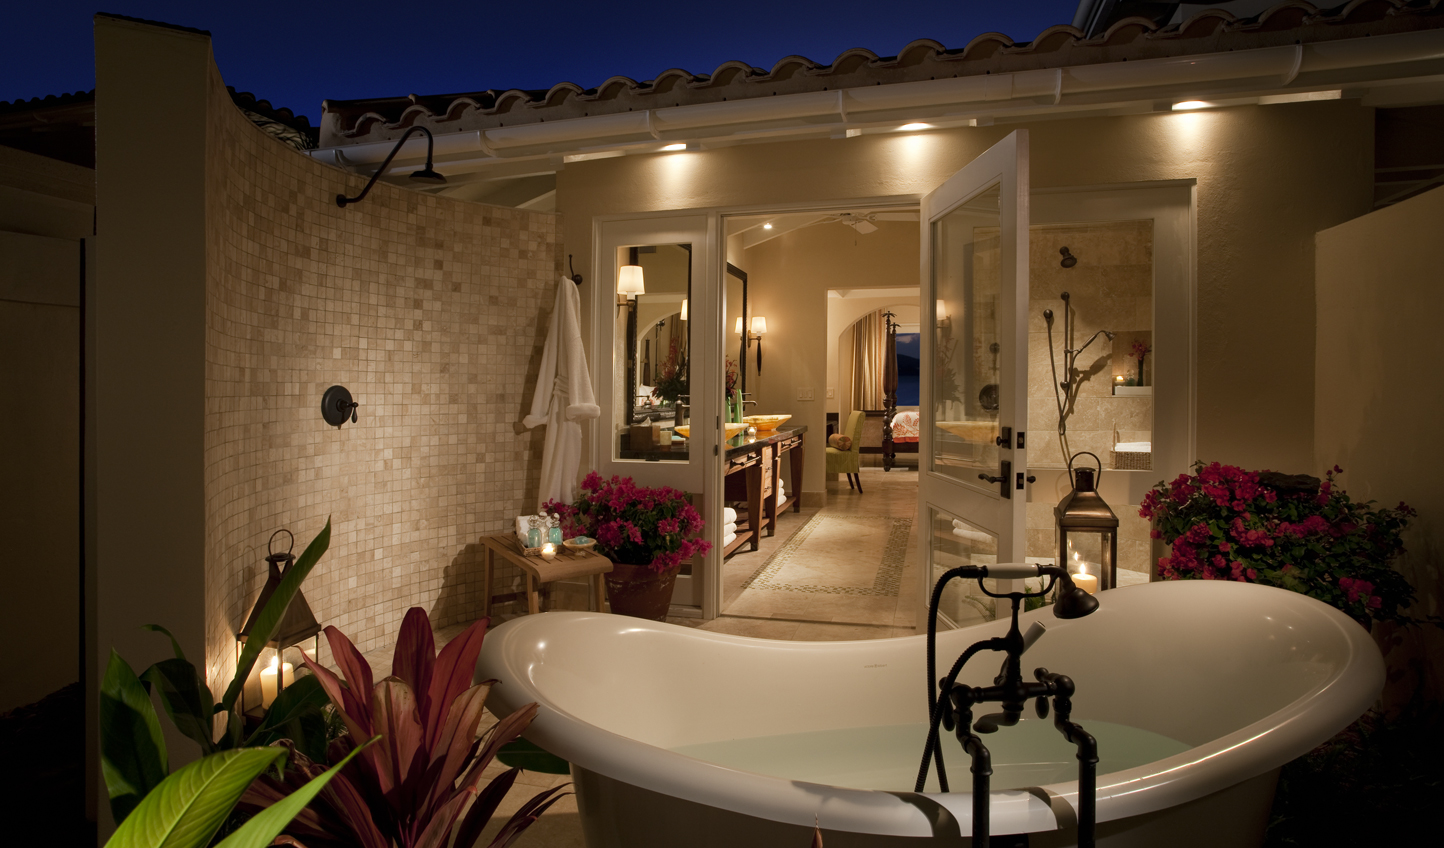 Take it up a notch further than an outdoor shower with an outdoor bath